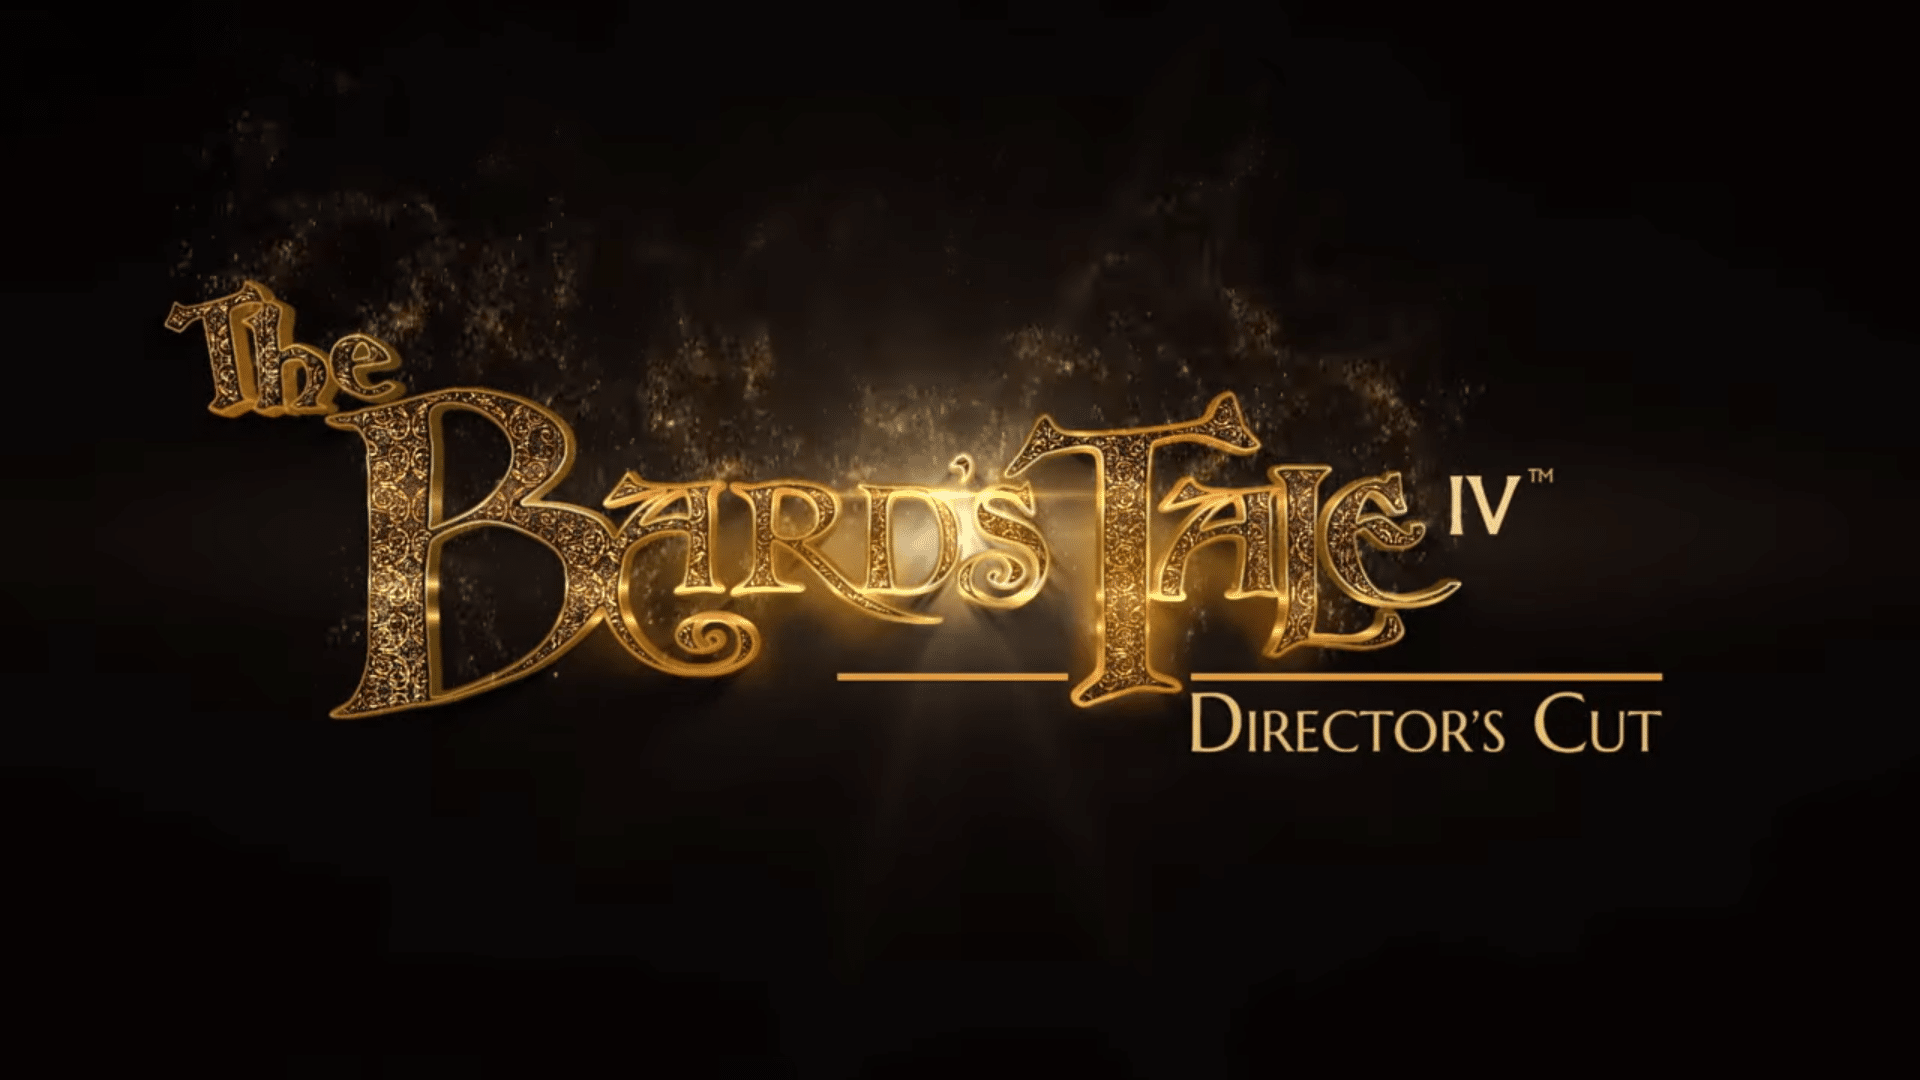 inXile Entertainment's The Bard's Tale IV: Director's Cut Arrives Digitally on August 27 With Retail Xbox One & PS4 on September 6